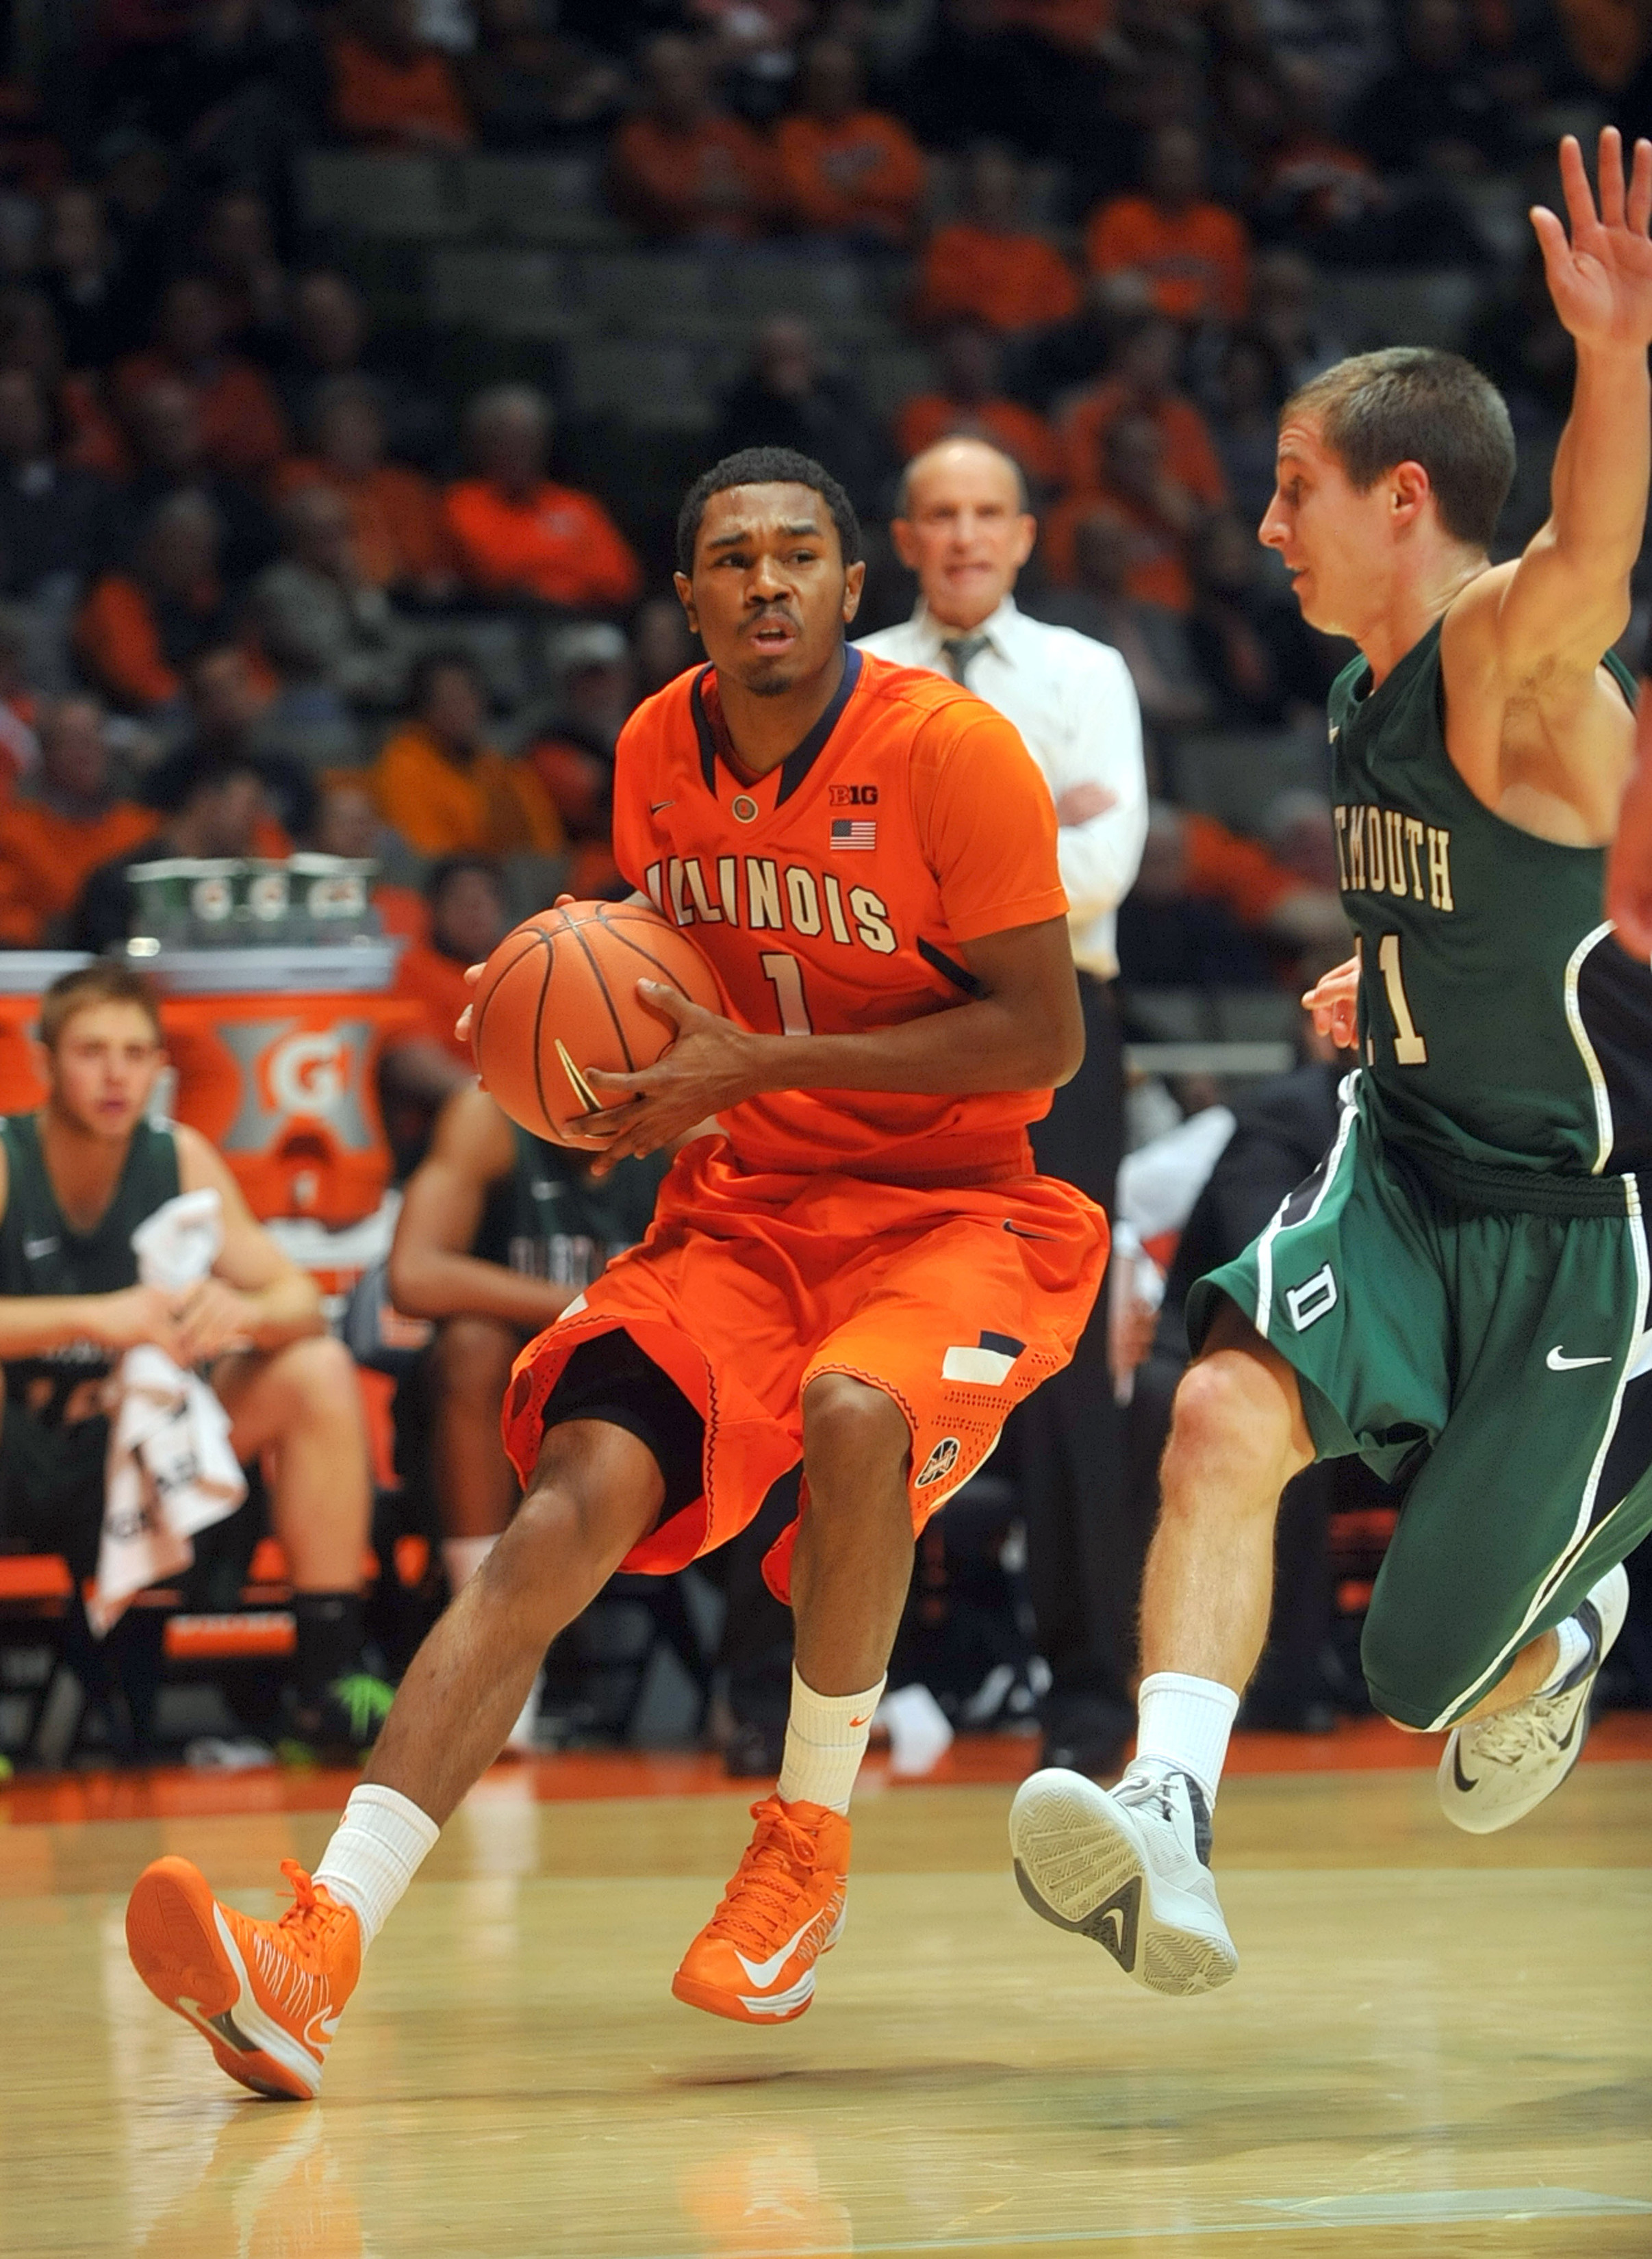 FILE - In this Dec. 10, 2013 file photo, Illinois guard Jaylon Tate (1) drives to drive around Dartmouth guard Alex Mitola (11) in the first half in an NCAA college basketball game in Champaign, Ill. Tate has been arrested on a misdemeanor charge of domes